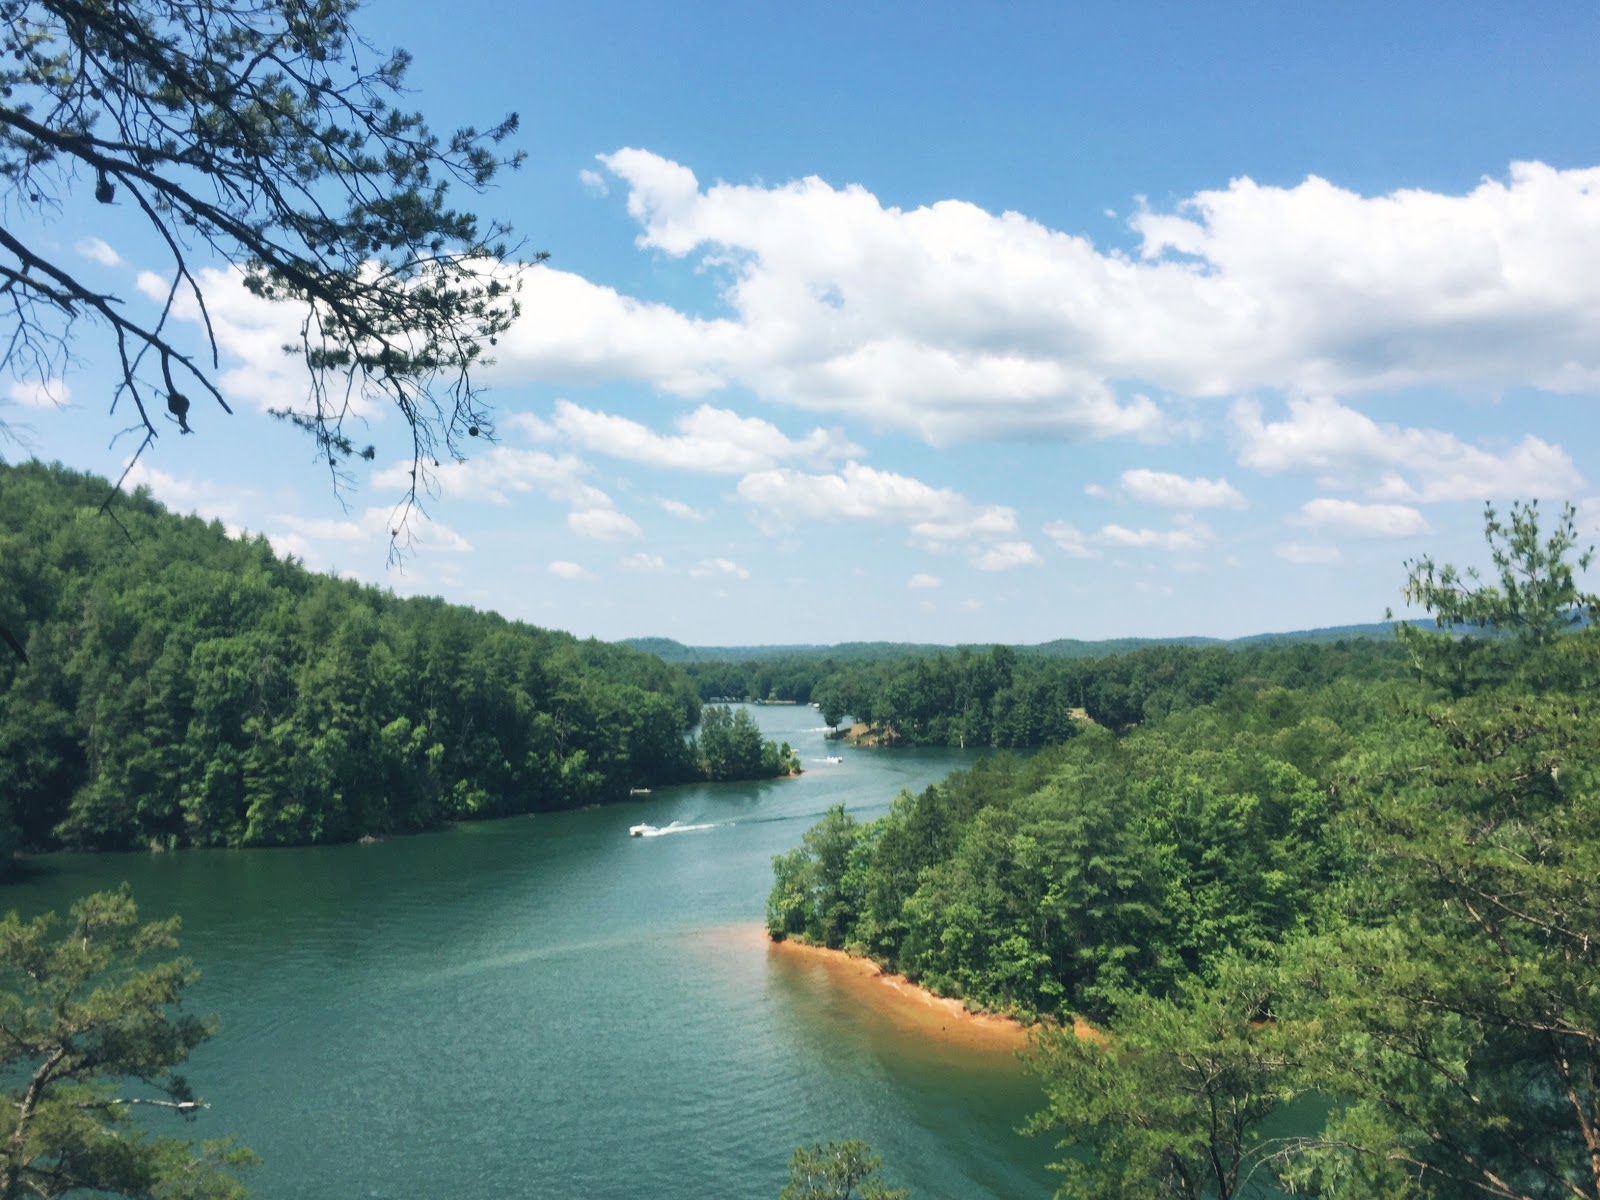 raven rock trail, lake keowee, hiking, south carolina, state park, camping